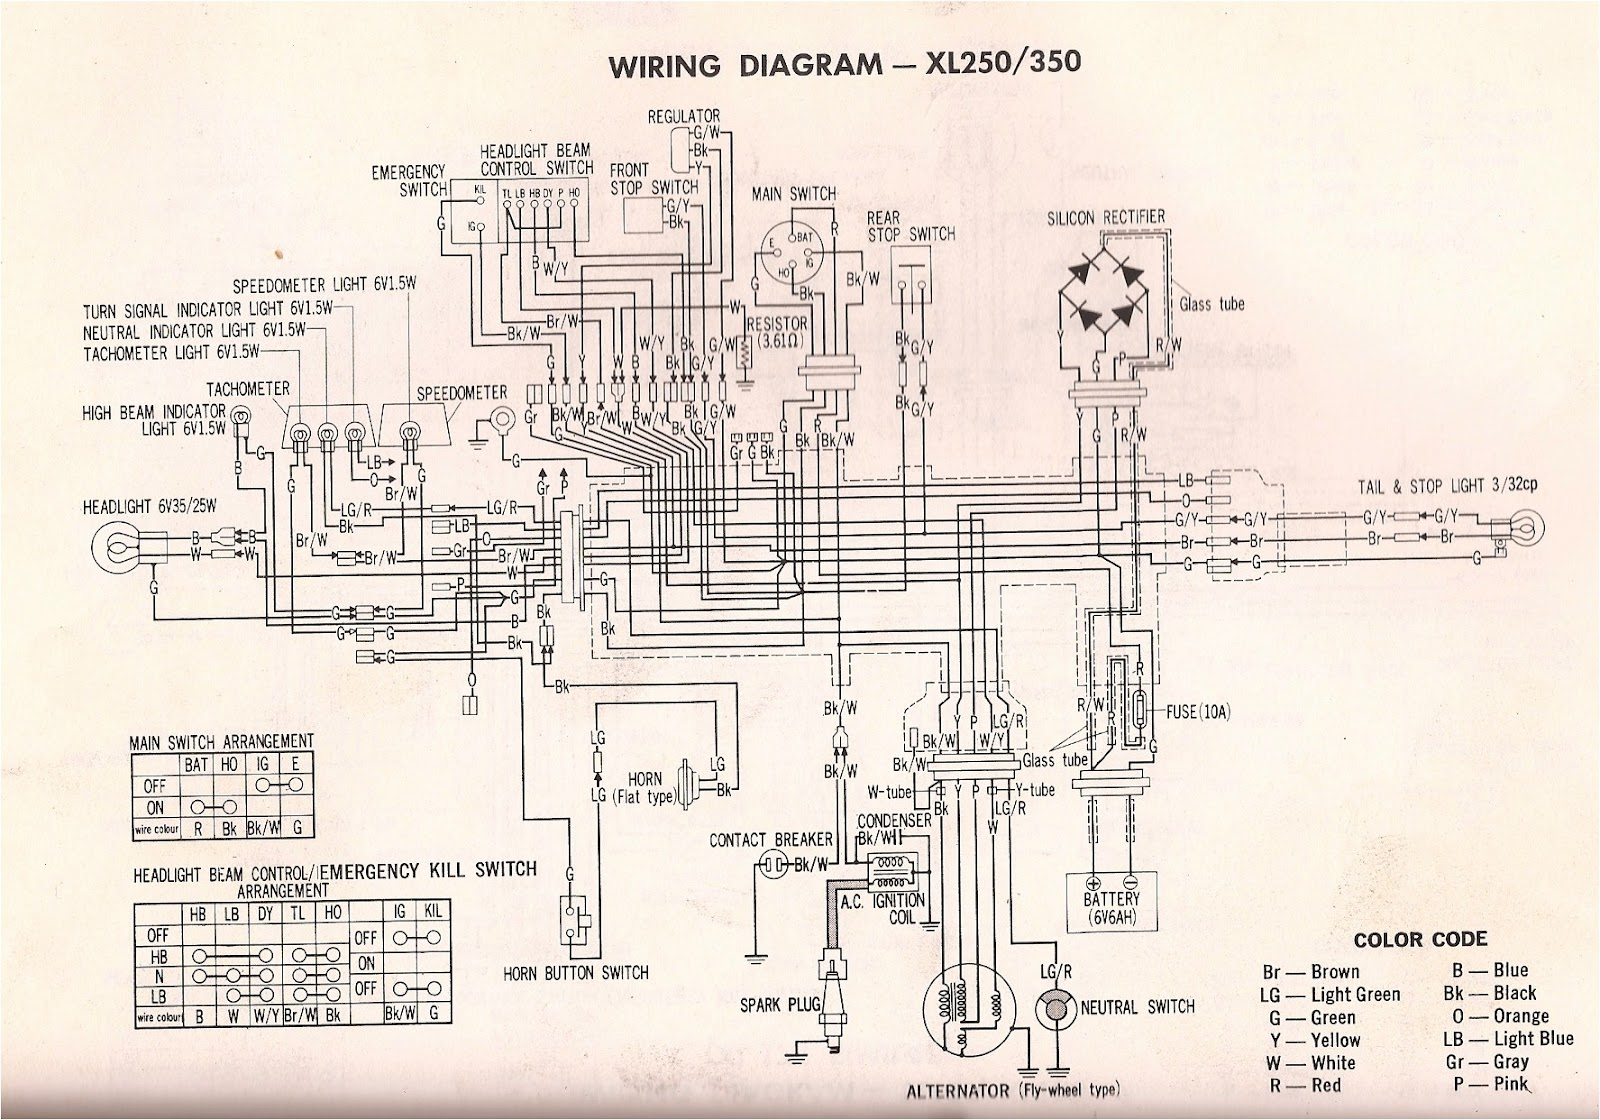 Wire Diagram 1980 Honda Xl250s Opinions About Wiring Diagram \u2022 Honda  CG 125 Wiring Diagram Honda Xl 250 Wiring Diagram